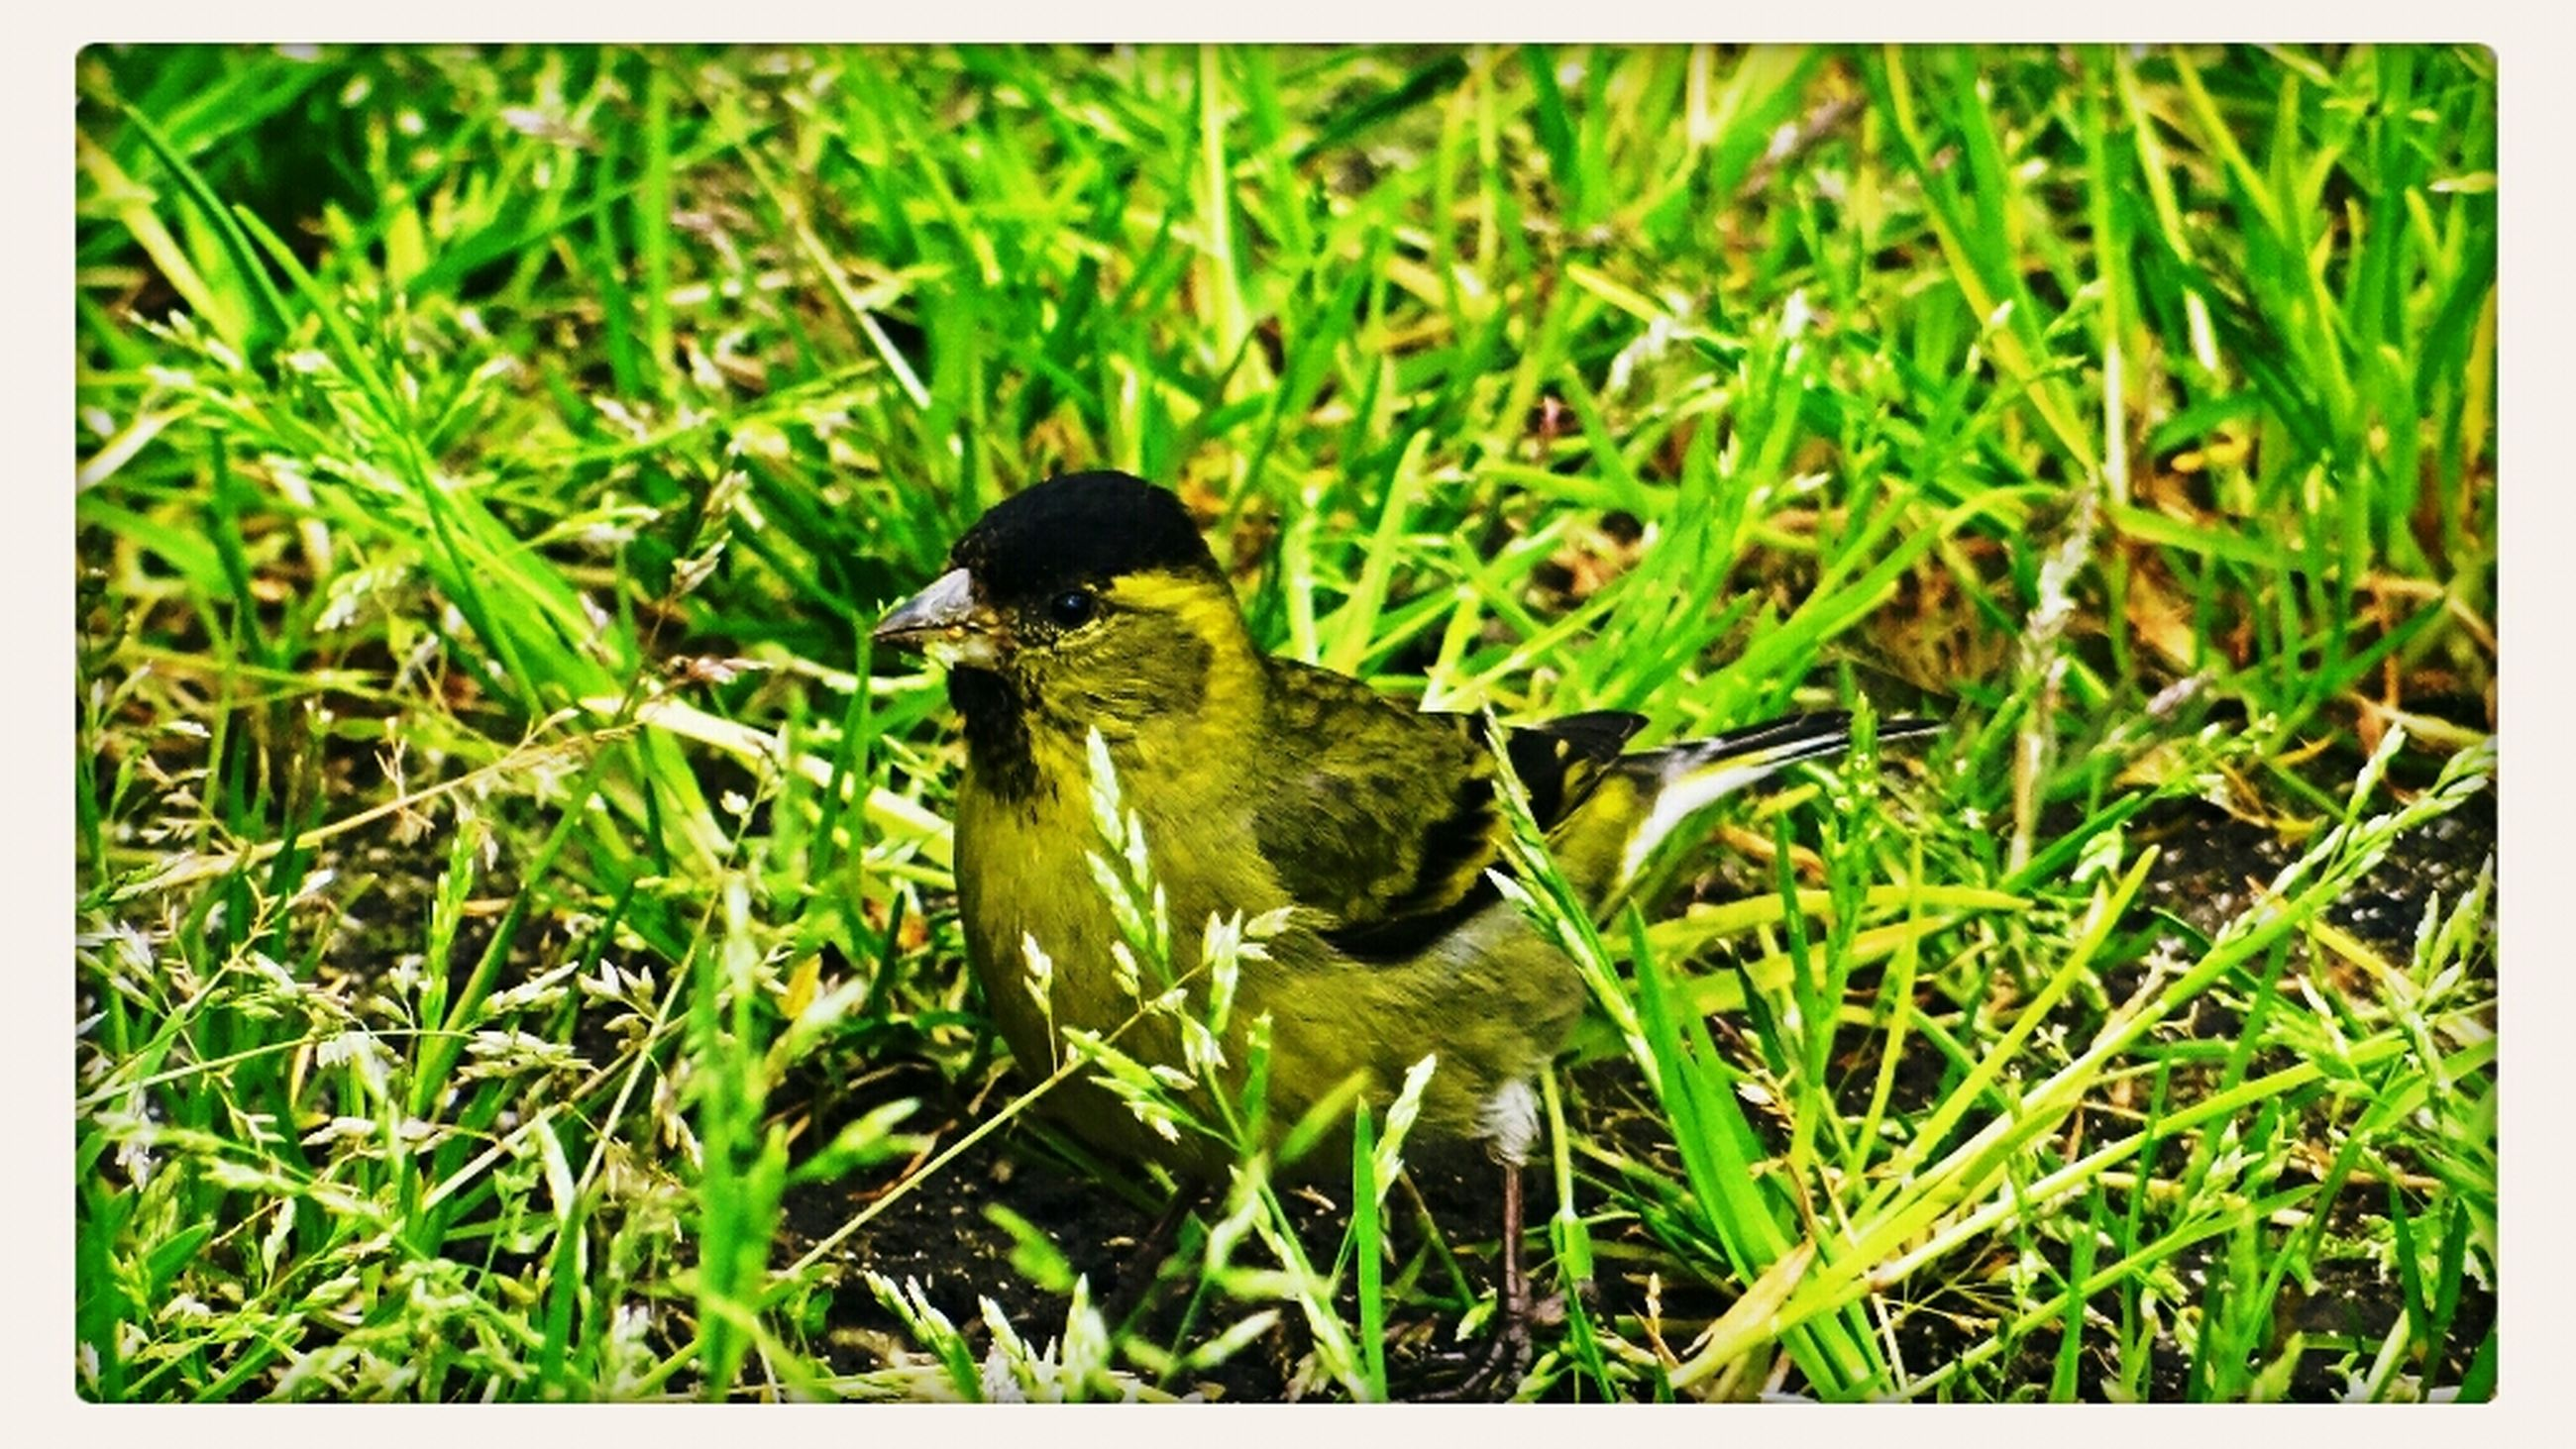 animals in the wild, bird, animal themes, grass, wildlife, one animal, green color, grassy, field, transfer print, duck, nature, growth, auto post production filter, plant, full length, perching, day, outdoors, beauty in nature